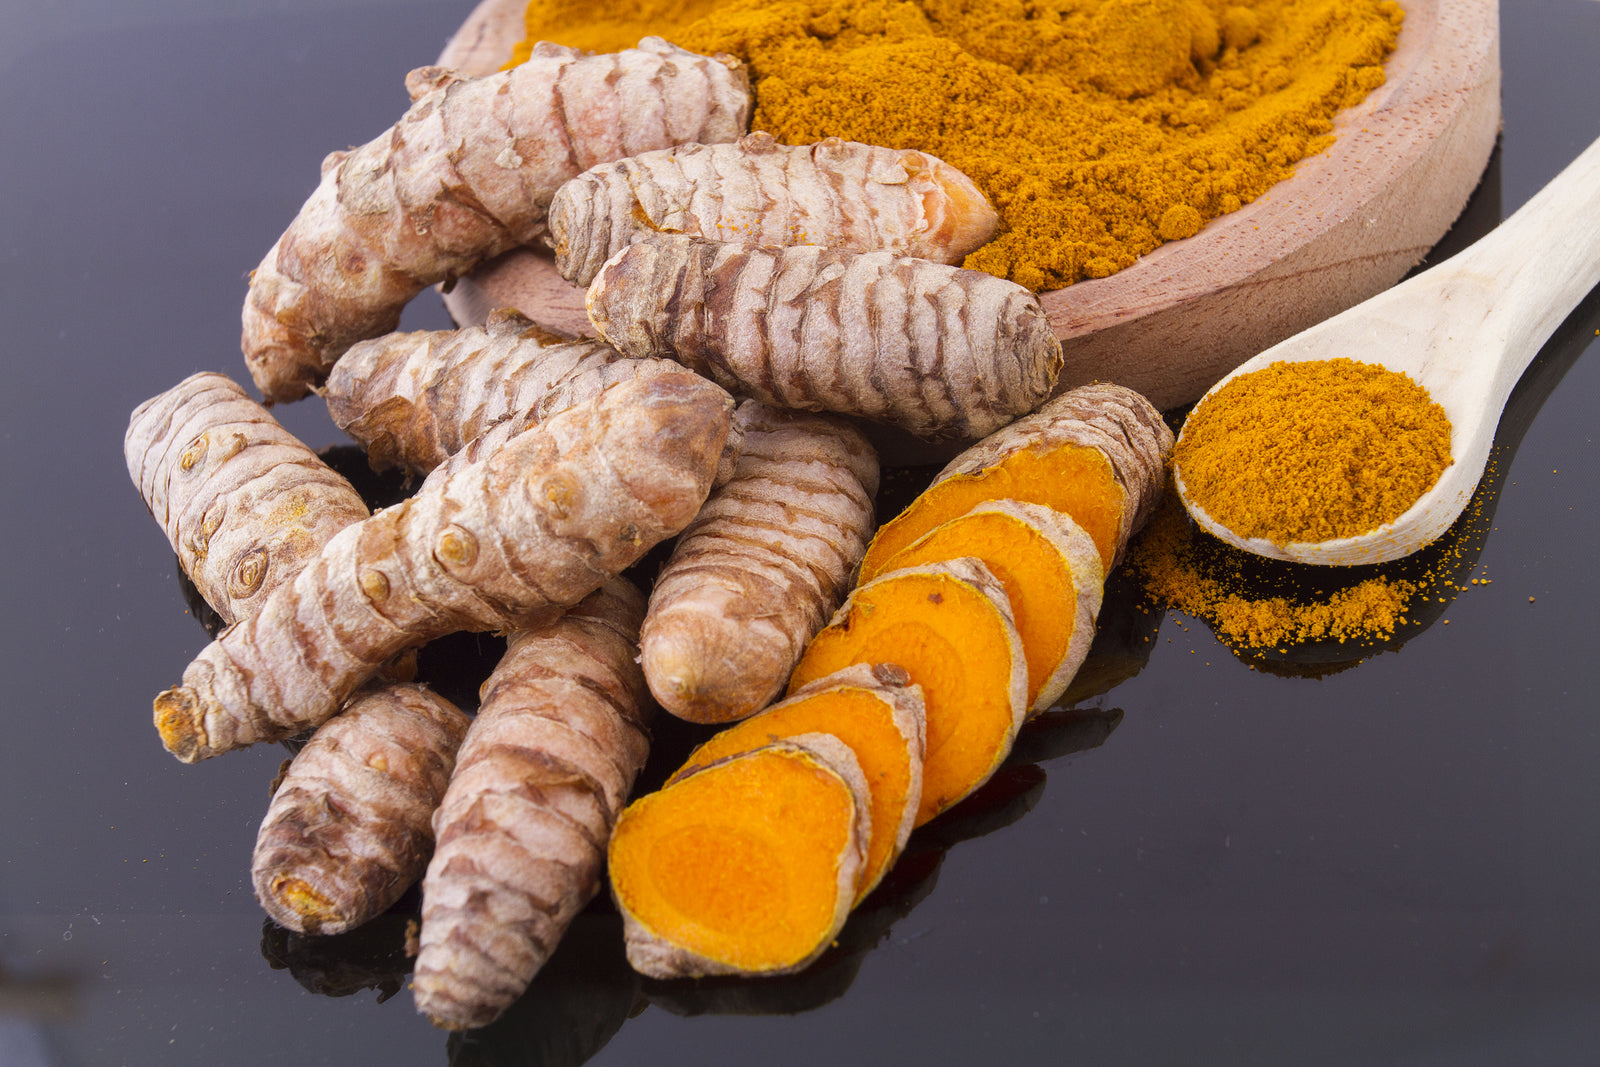 Curcumin pictured in its many different forms such as the root and powder as a joint support supplement